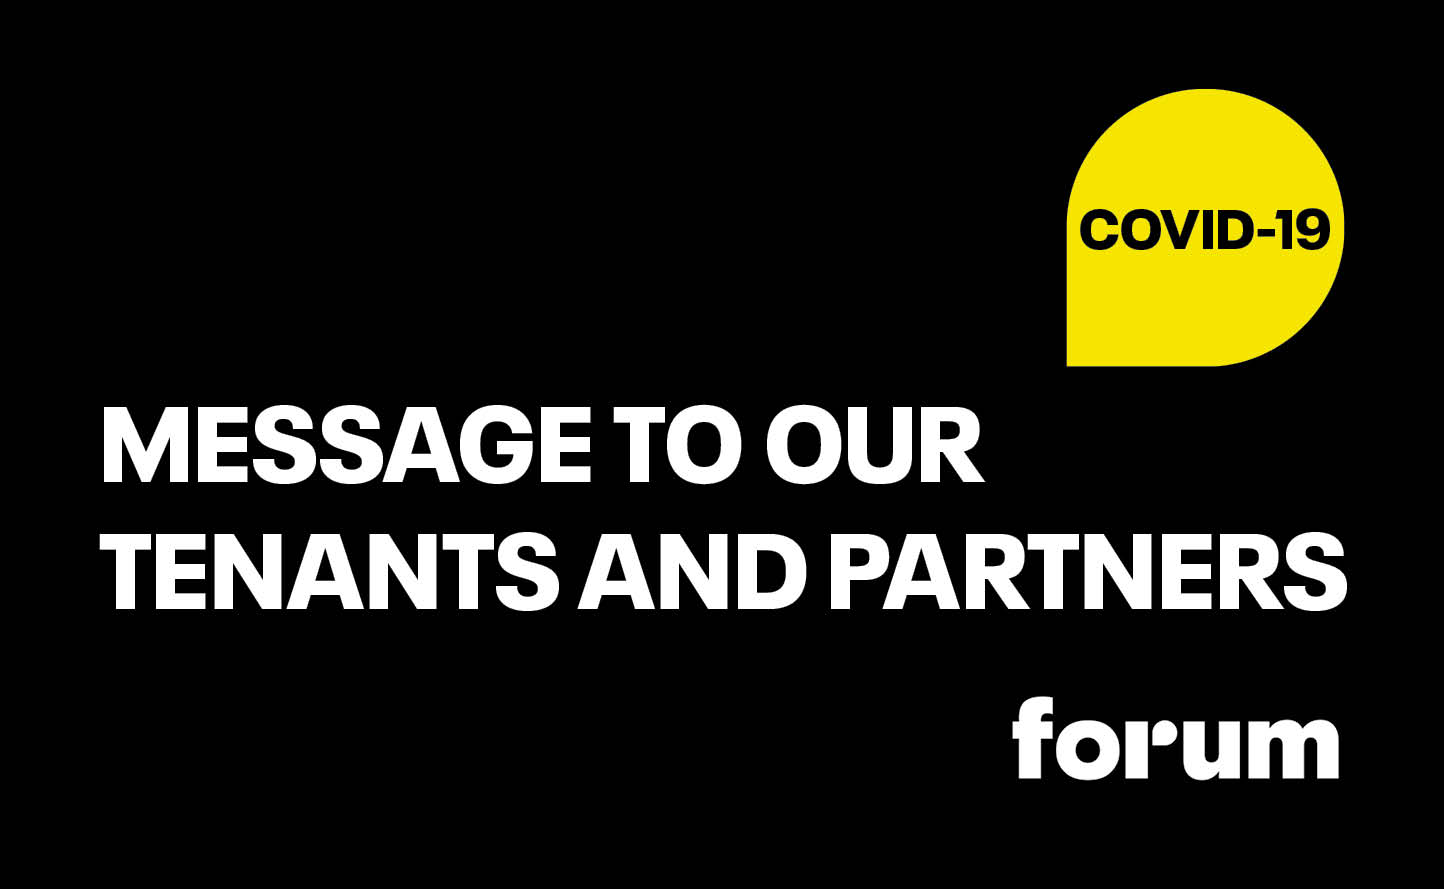 Covid 19 Message to our tenants and partners